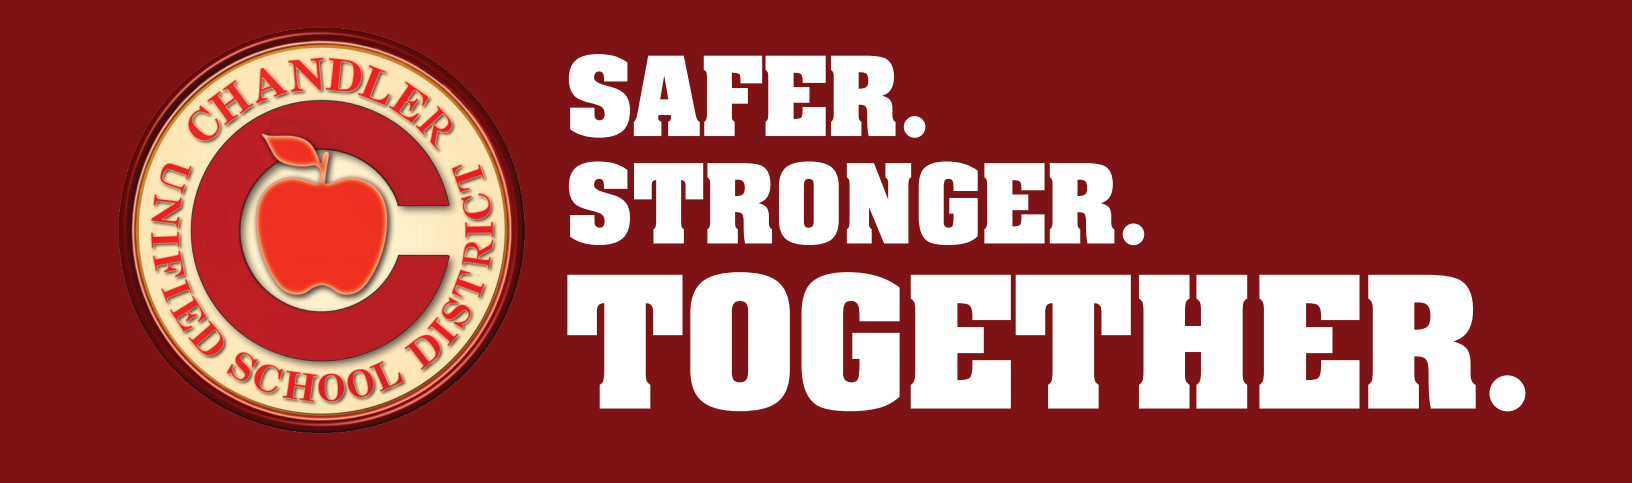 Safer Stronger Together